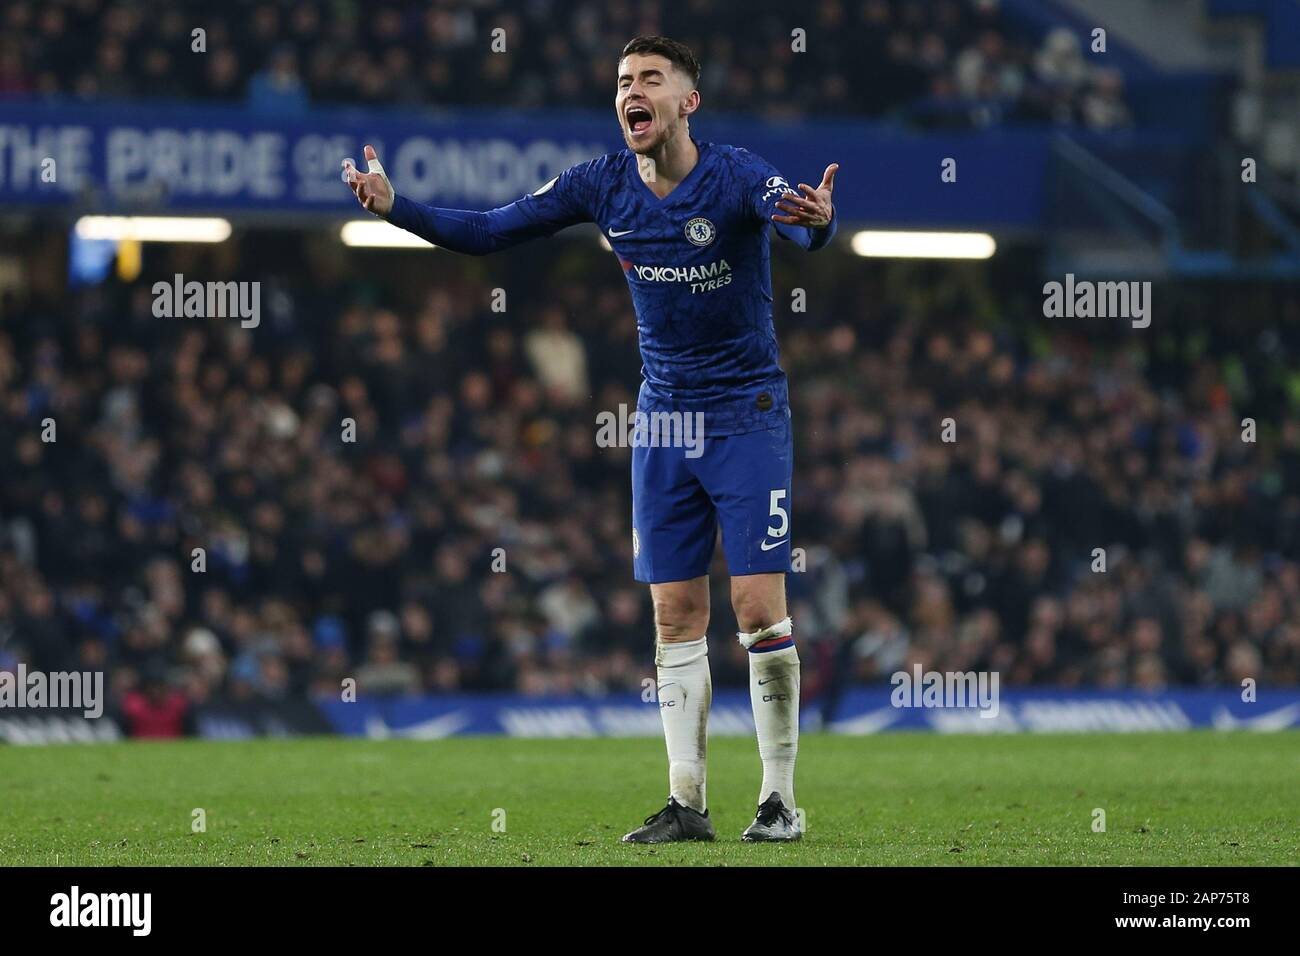 London, UK. 21st Jan, 2020. Jorginho of Chelsea during the Premier League match between Chelsea and Arsenal at Stamford Bridge, London on Tuesday 21st January 2020. (Credit: Jacques Feeney | MI News) Editorial use only. Credit: MI News & Sport /Alamy Live News Stock Photo